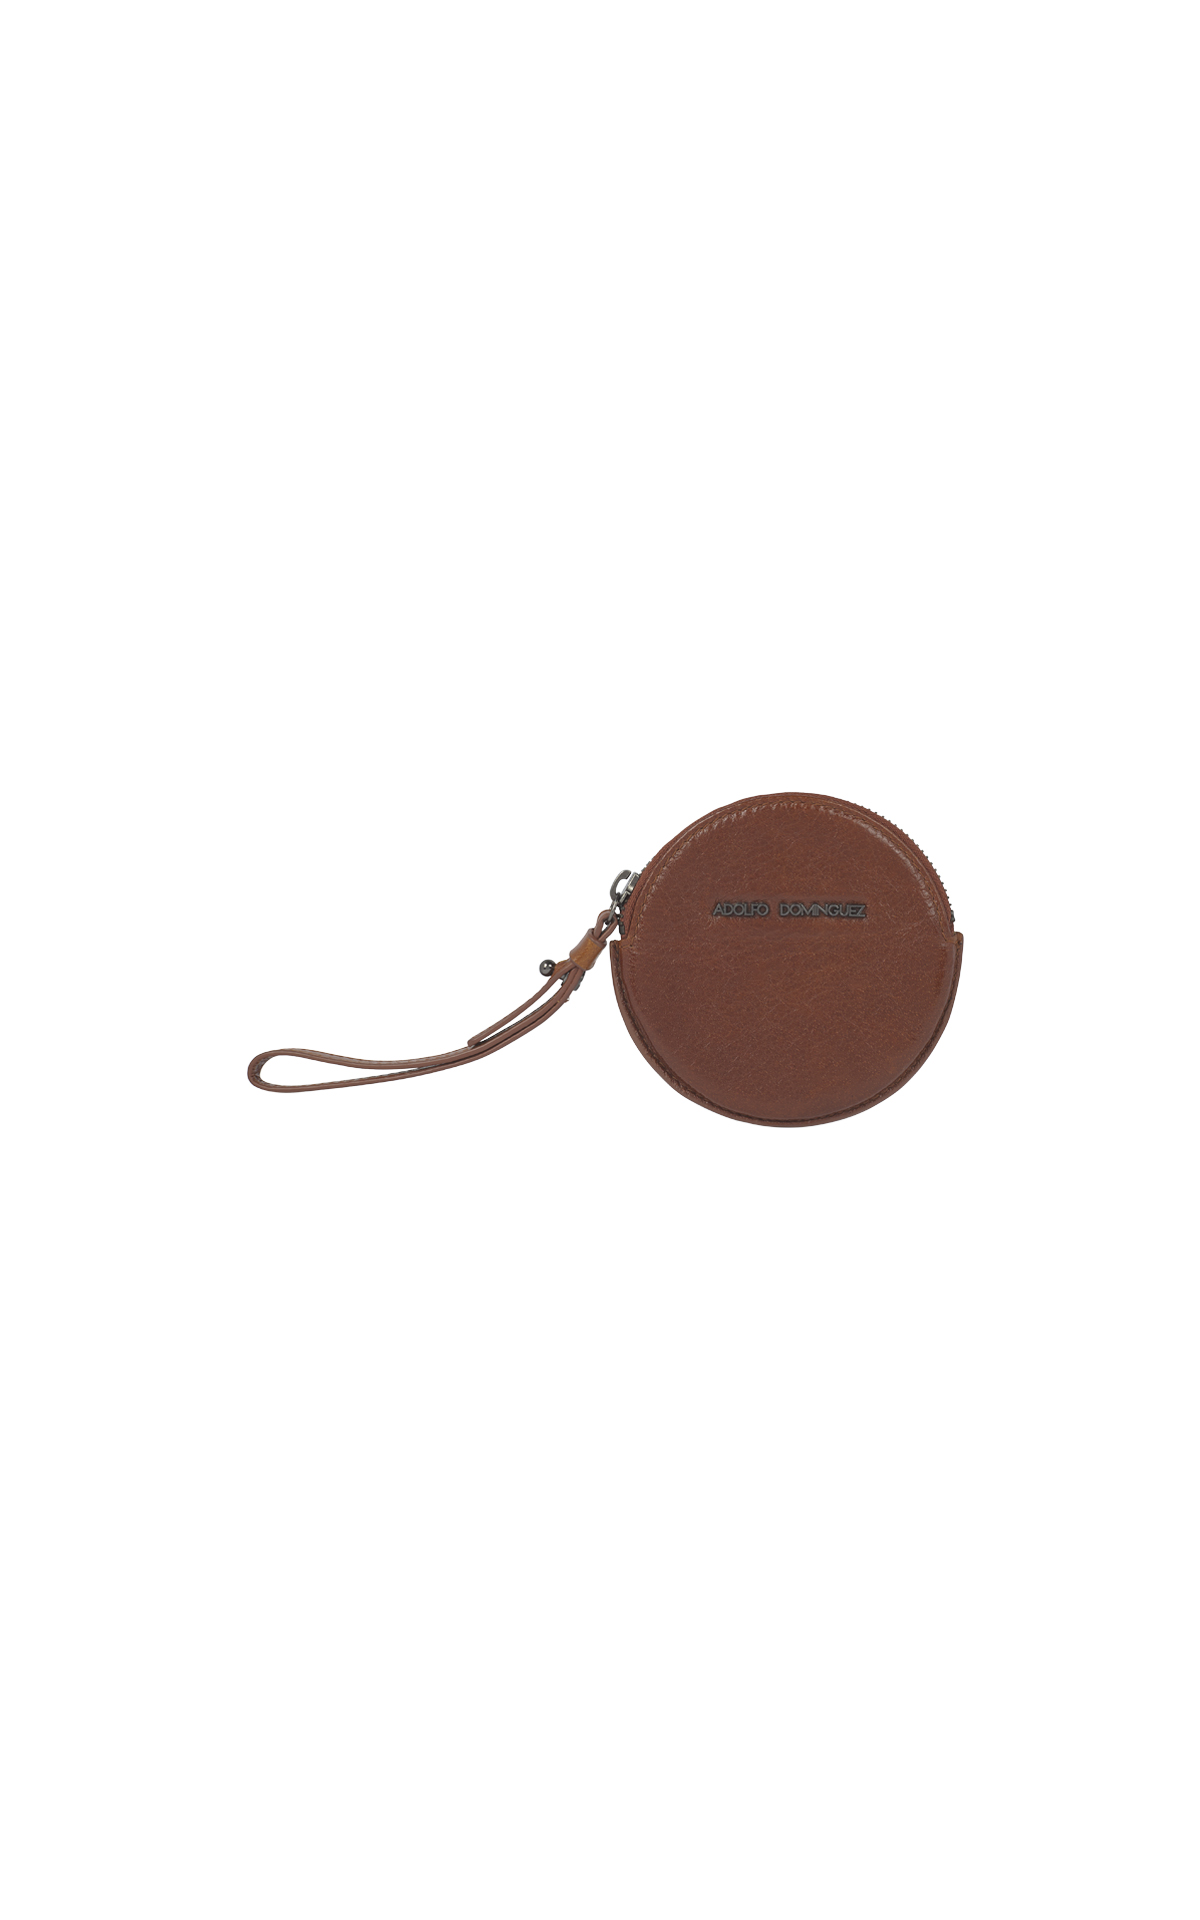 Round brown leather coin purse Adolfo Dominguez